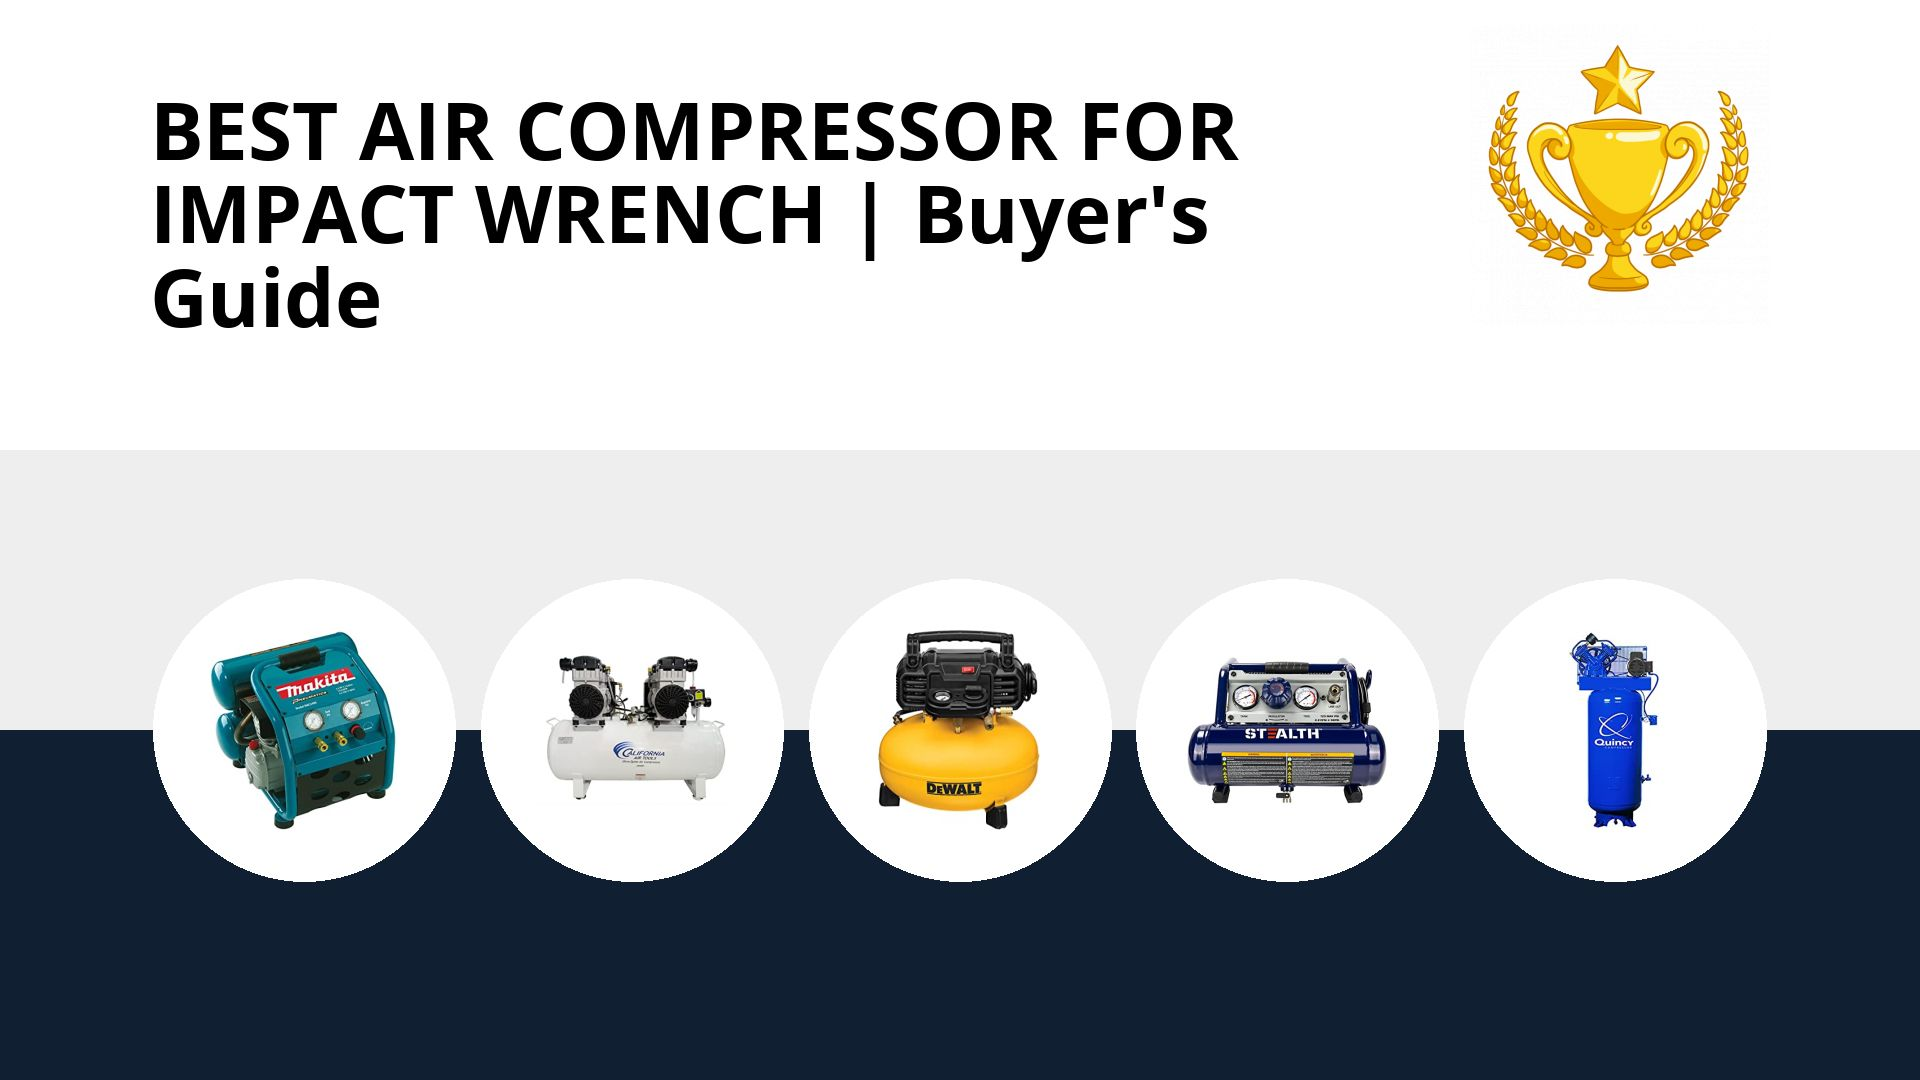 Best Air Compressor For Impact Wrench: image